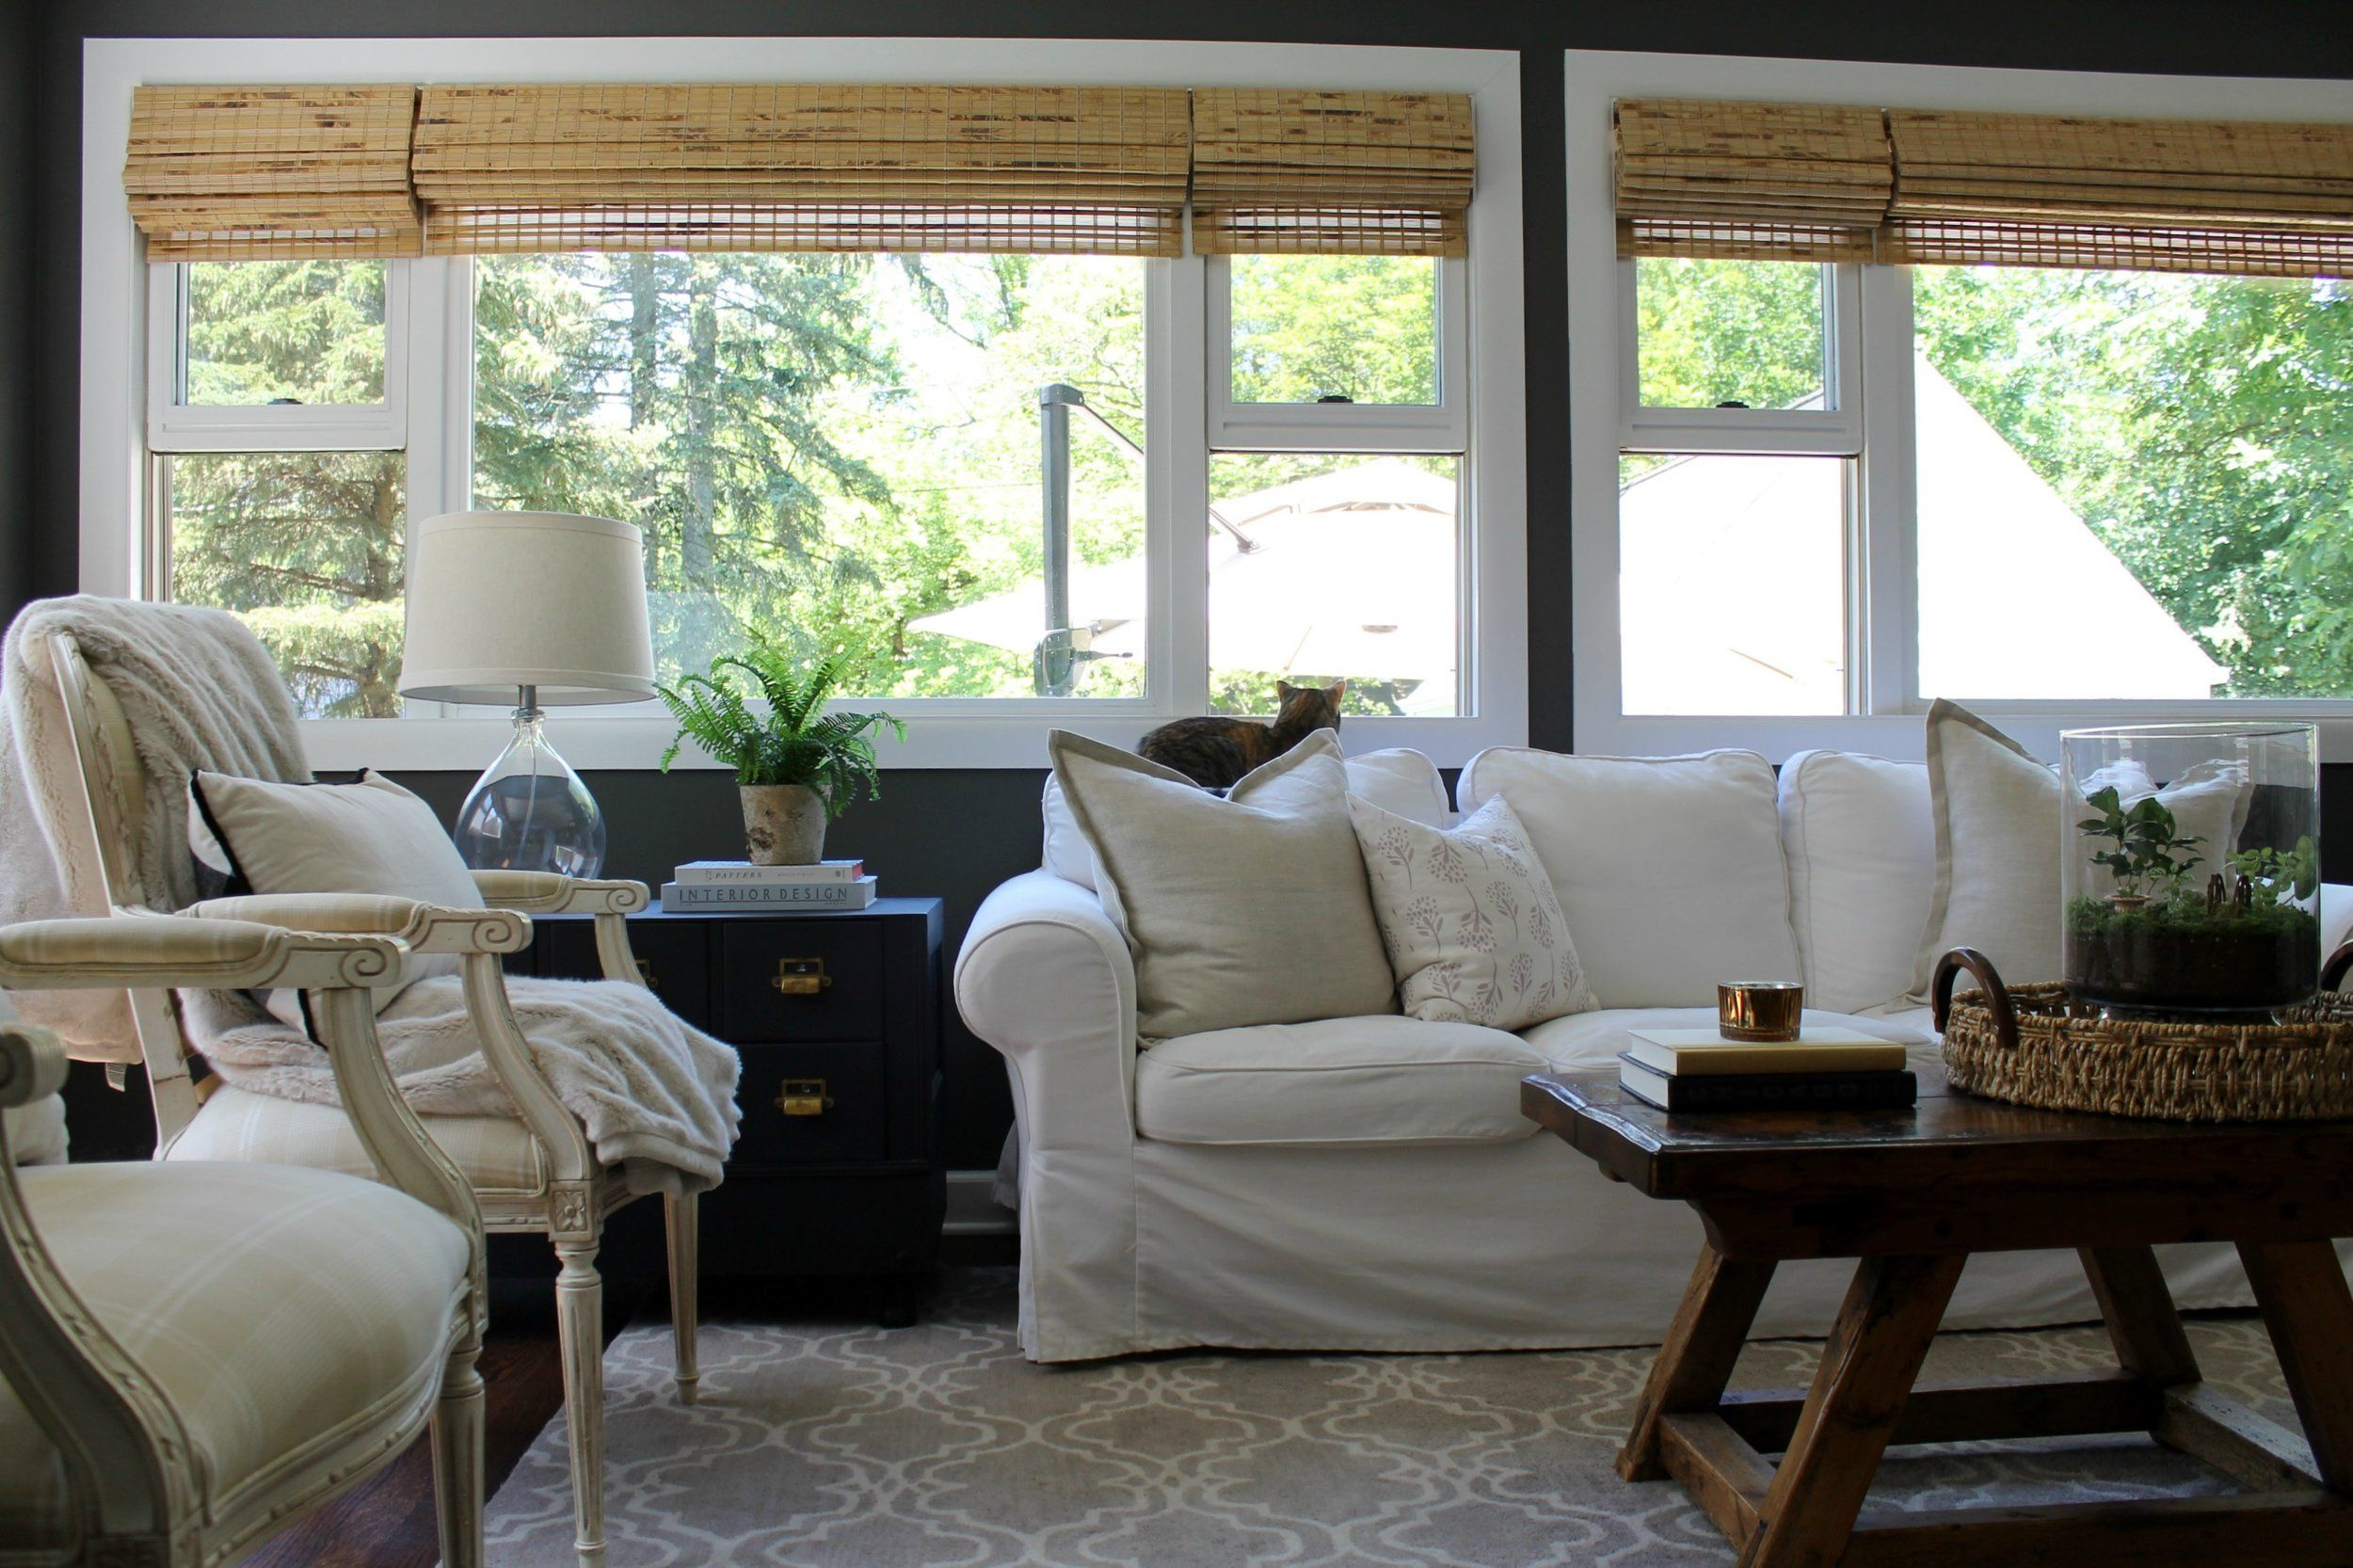 Small Home Style: Cape Cod Chicago Home Tour (With images ...